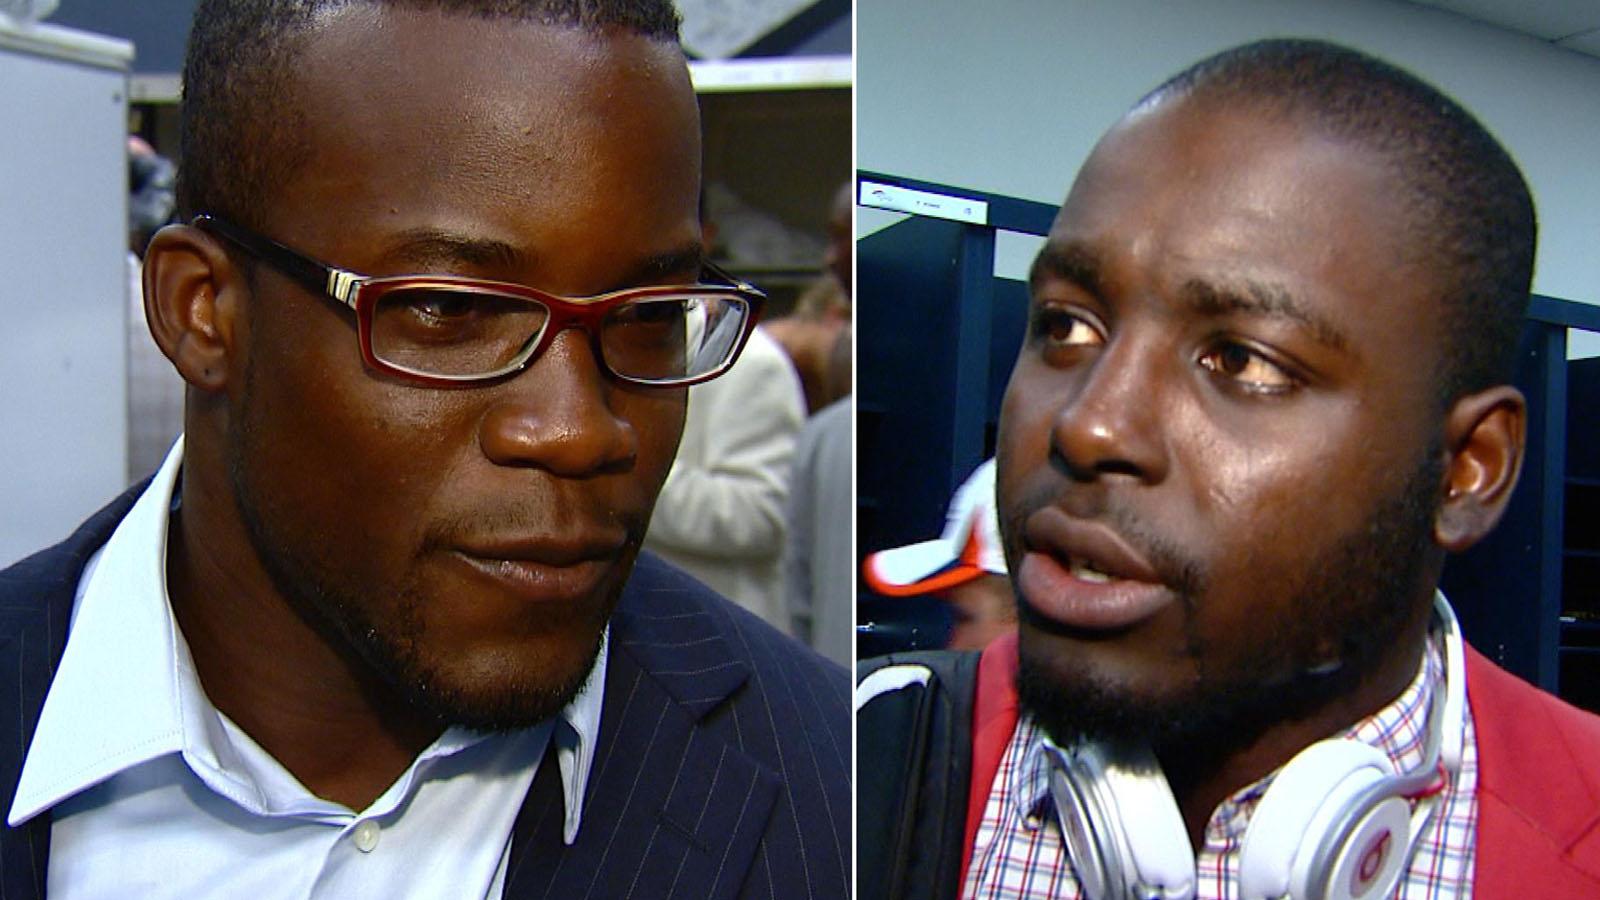 Ronnie Hillman, left, and Montee Ball (credit: CBS)